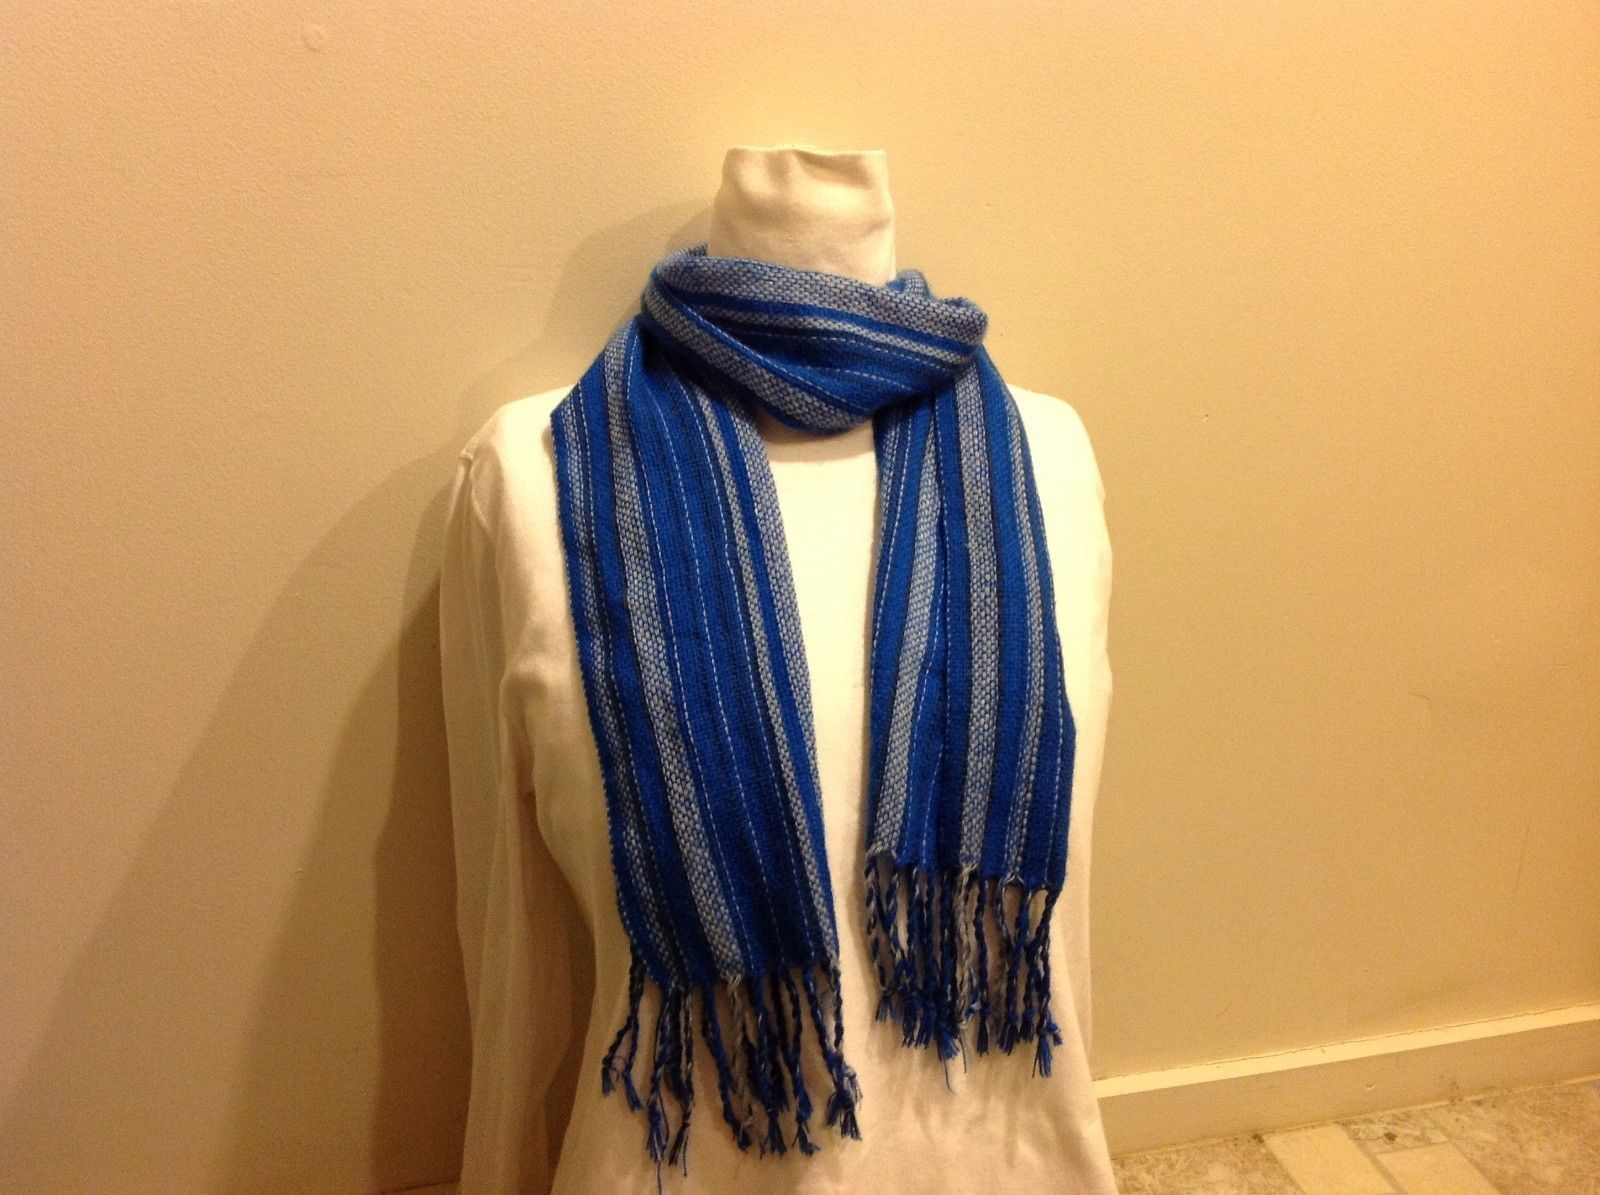 Vertical Striped Scarf Knitting Pattern : Vertical Blue Striped Knit Scarf w Fringed and Braided Ends